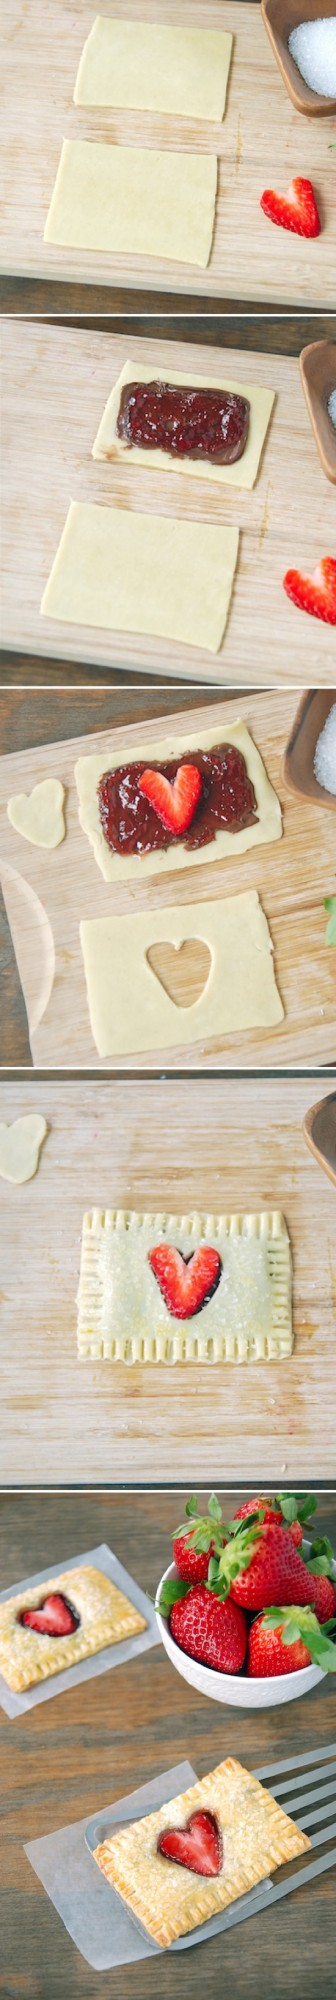 20 Hart- Shaped Food Recipes for Sweet Valentine (19)